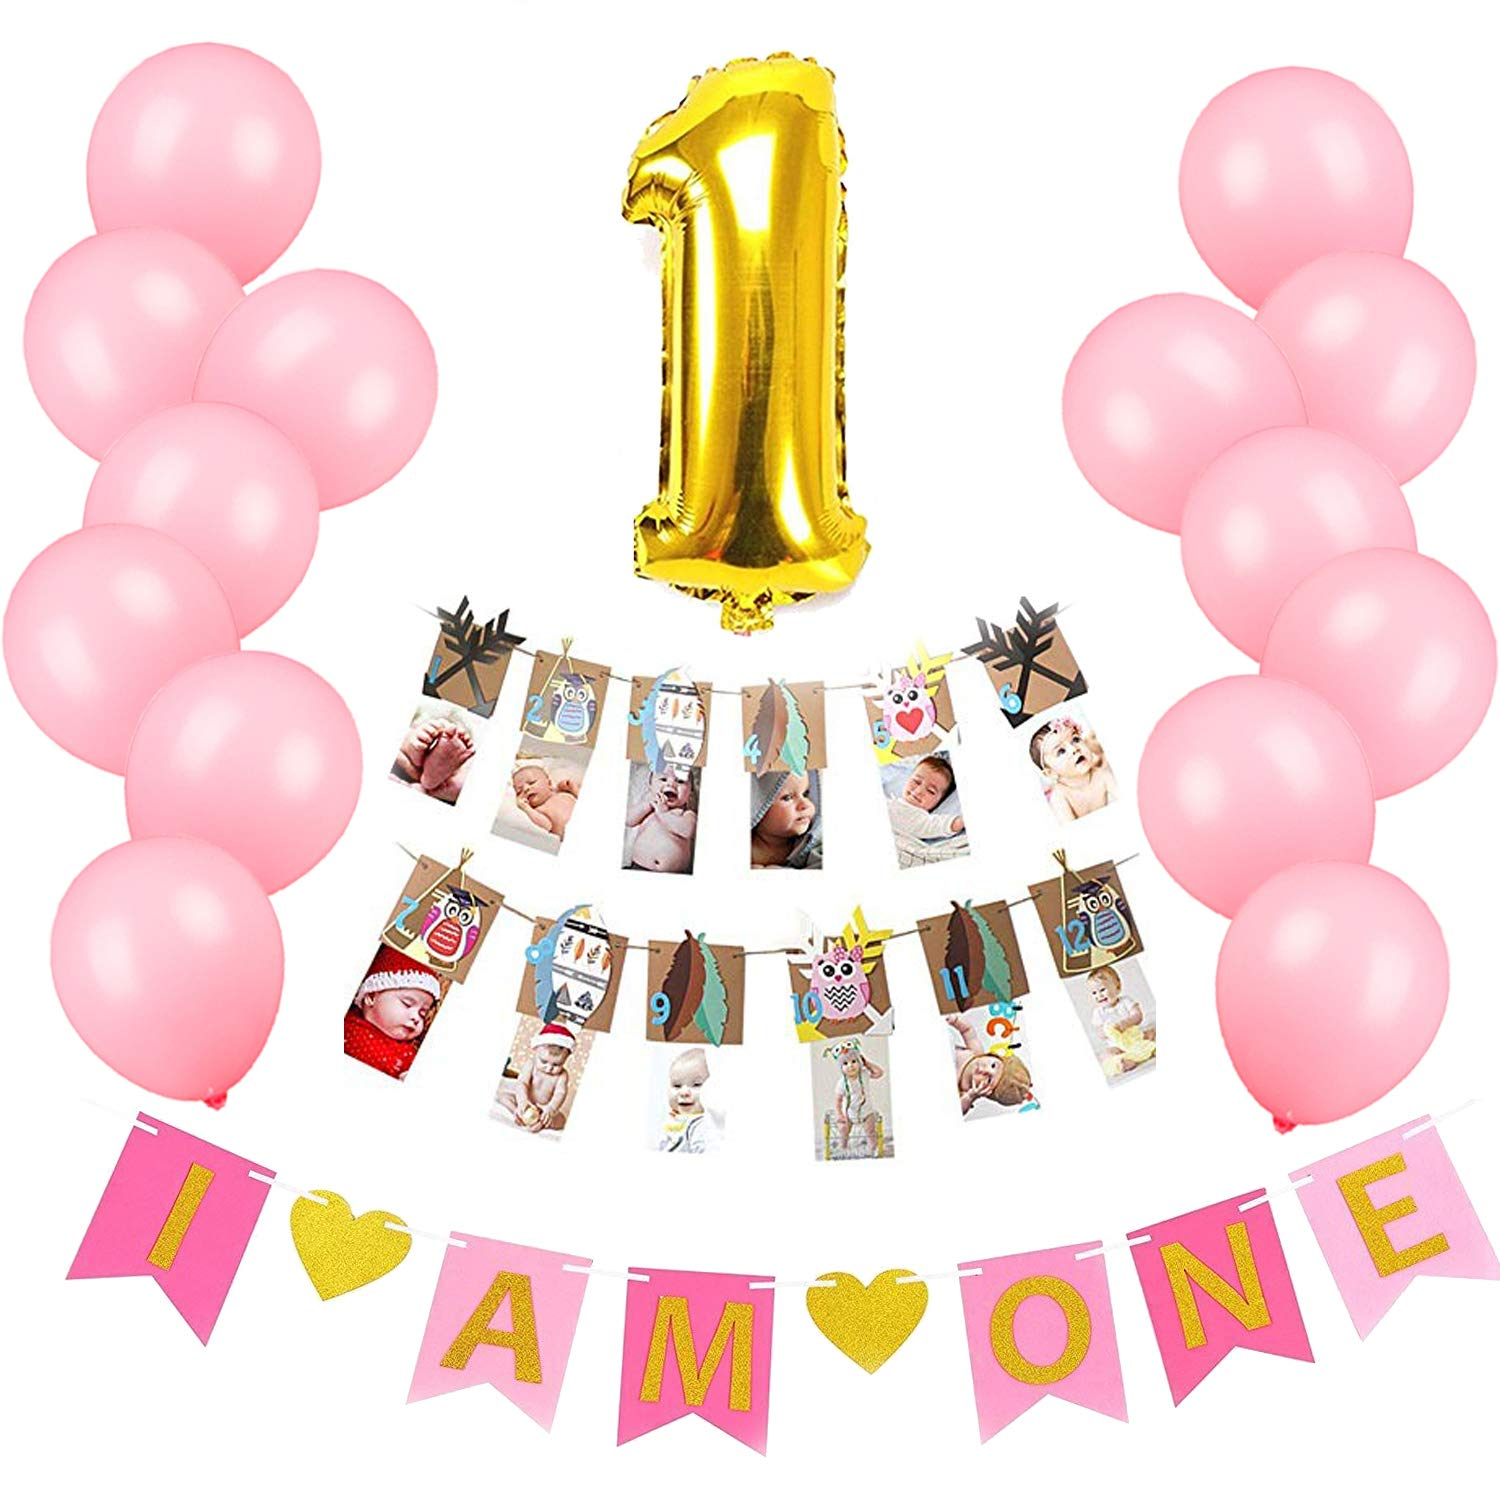 ed33baad4 Baby Girl First Woodland Birthday Decorations Set-Pink Banner Sign,Owl  Photo Banner,Balloons,Party Supplies and Favors for Toddler Cowgirl Puppy  Dog ...